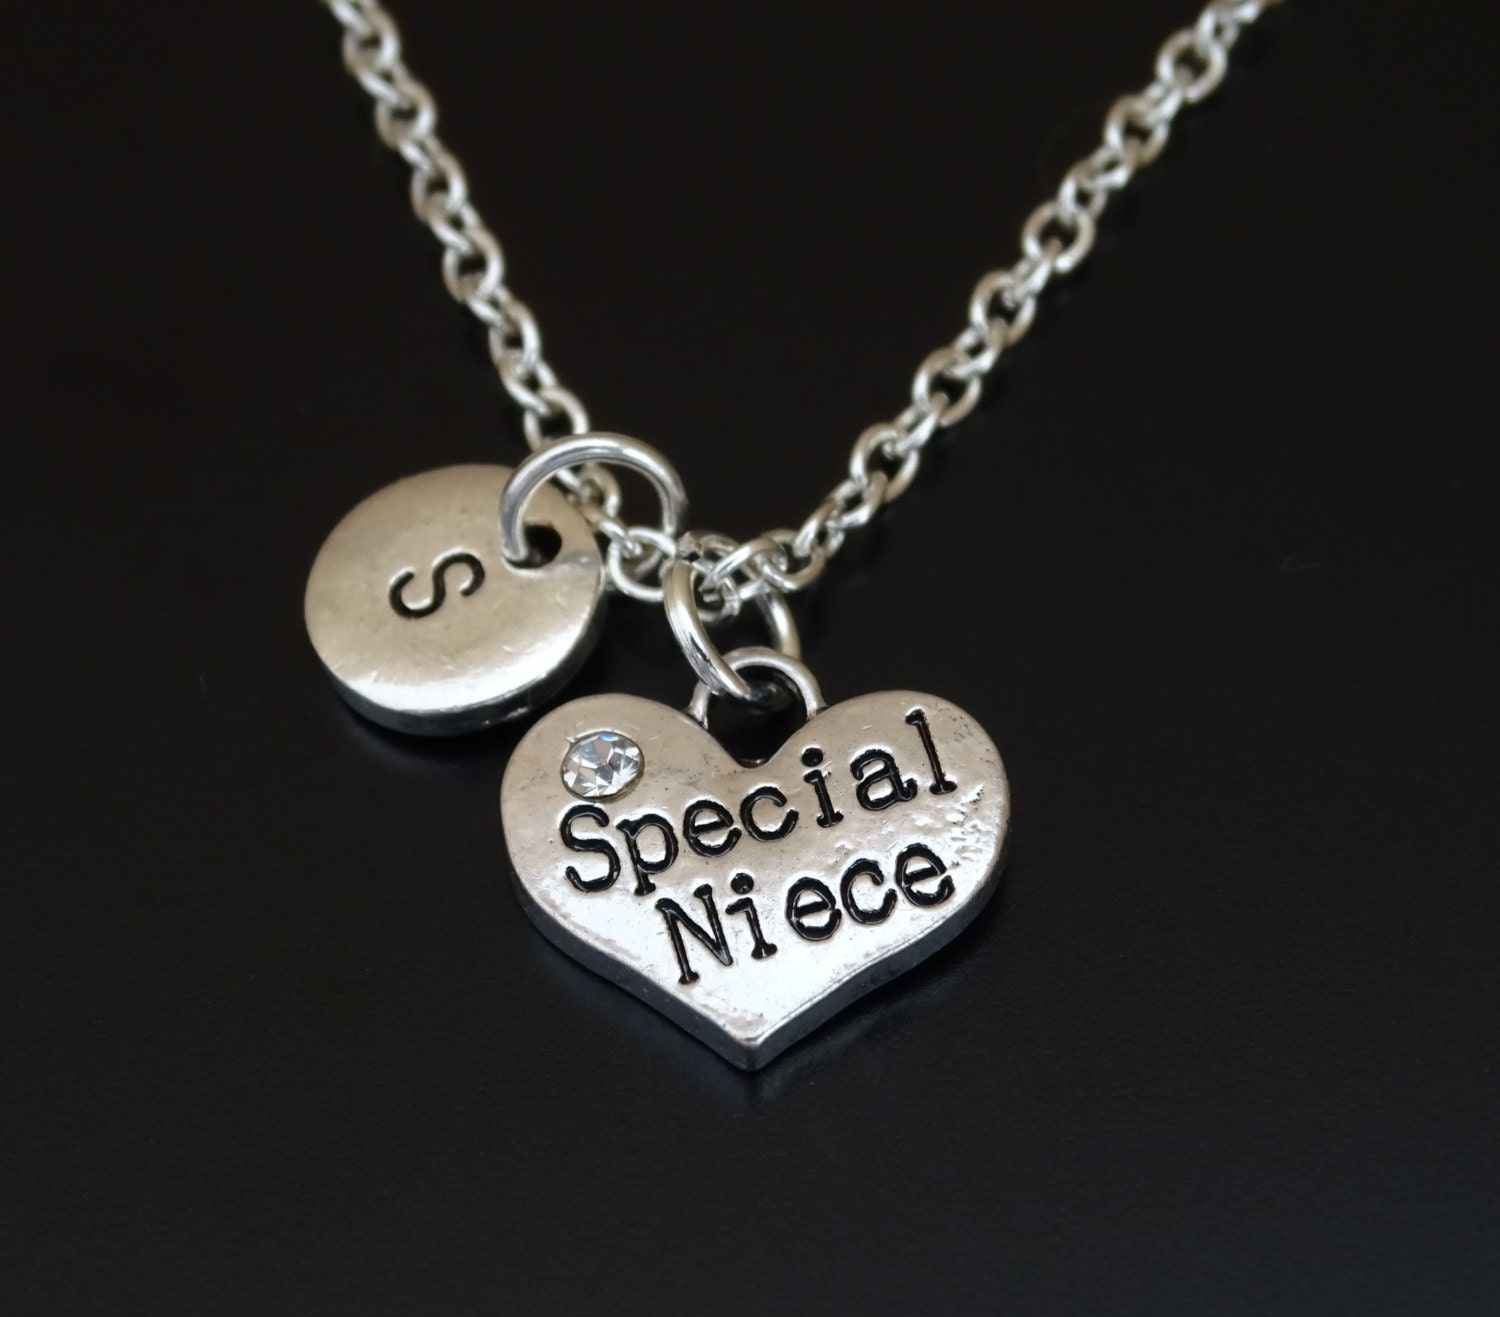 hallmark walmart special connections loved acda ip com clear from necklace stainless crystal so pendant steel